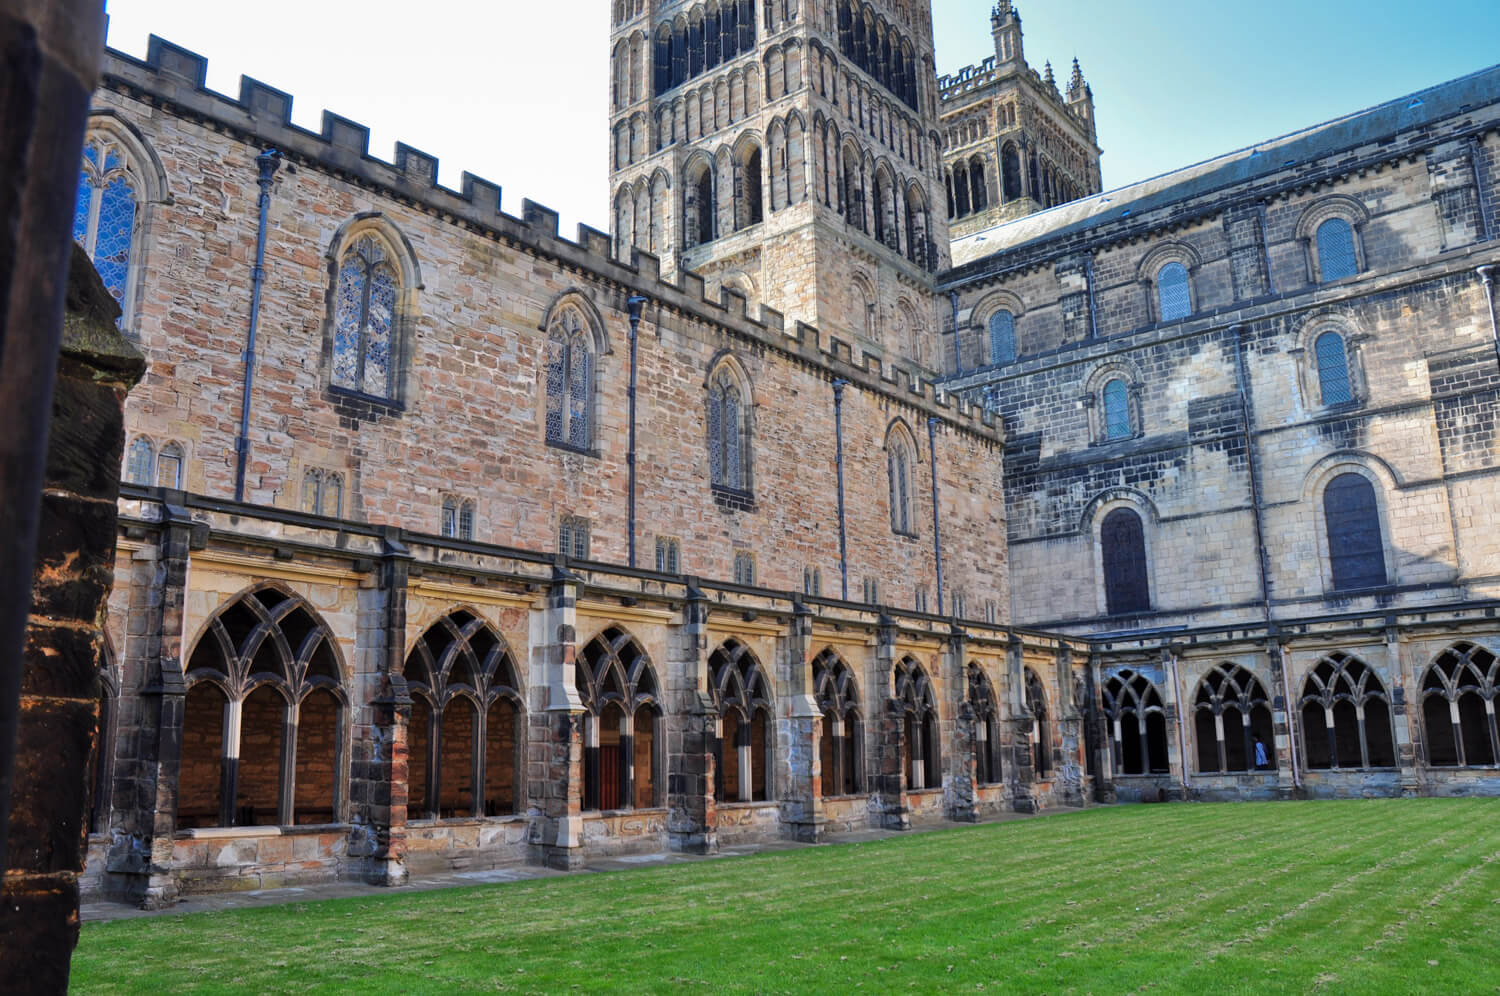 Harry Potter movie locations - Durham - JRMI